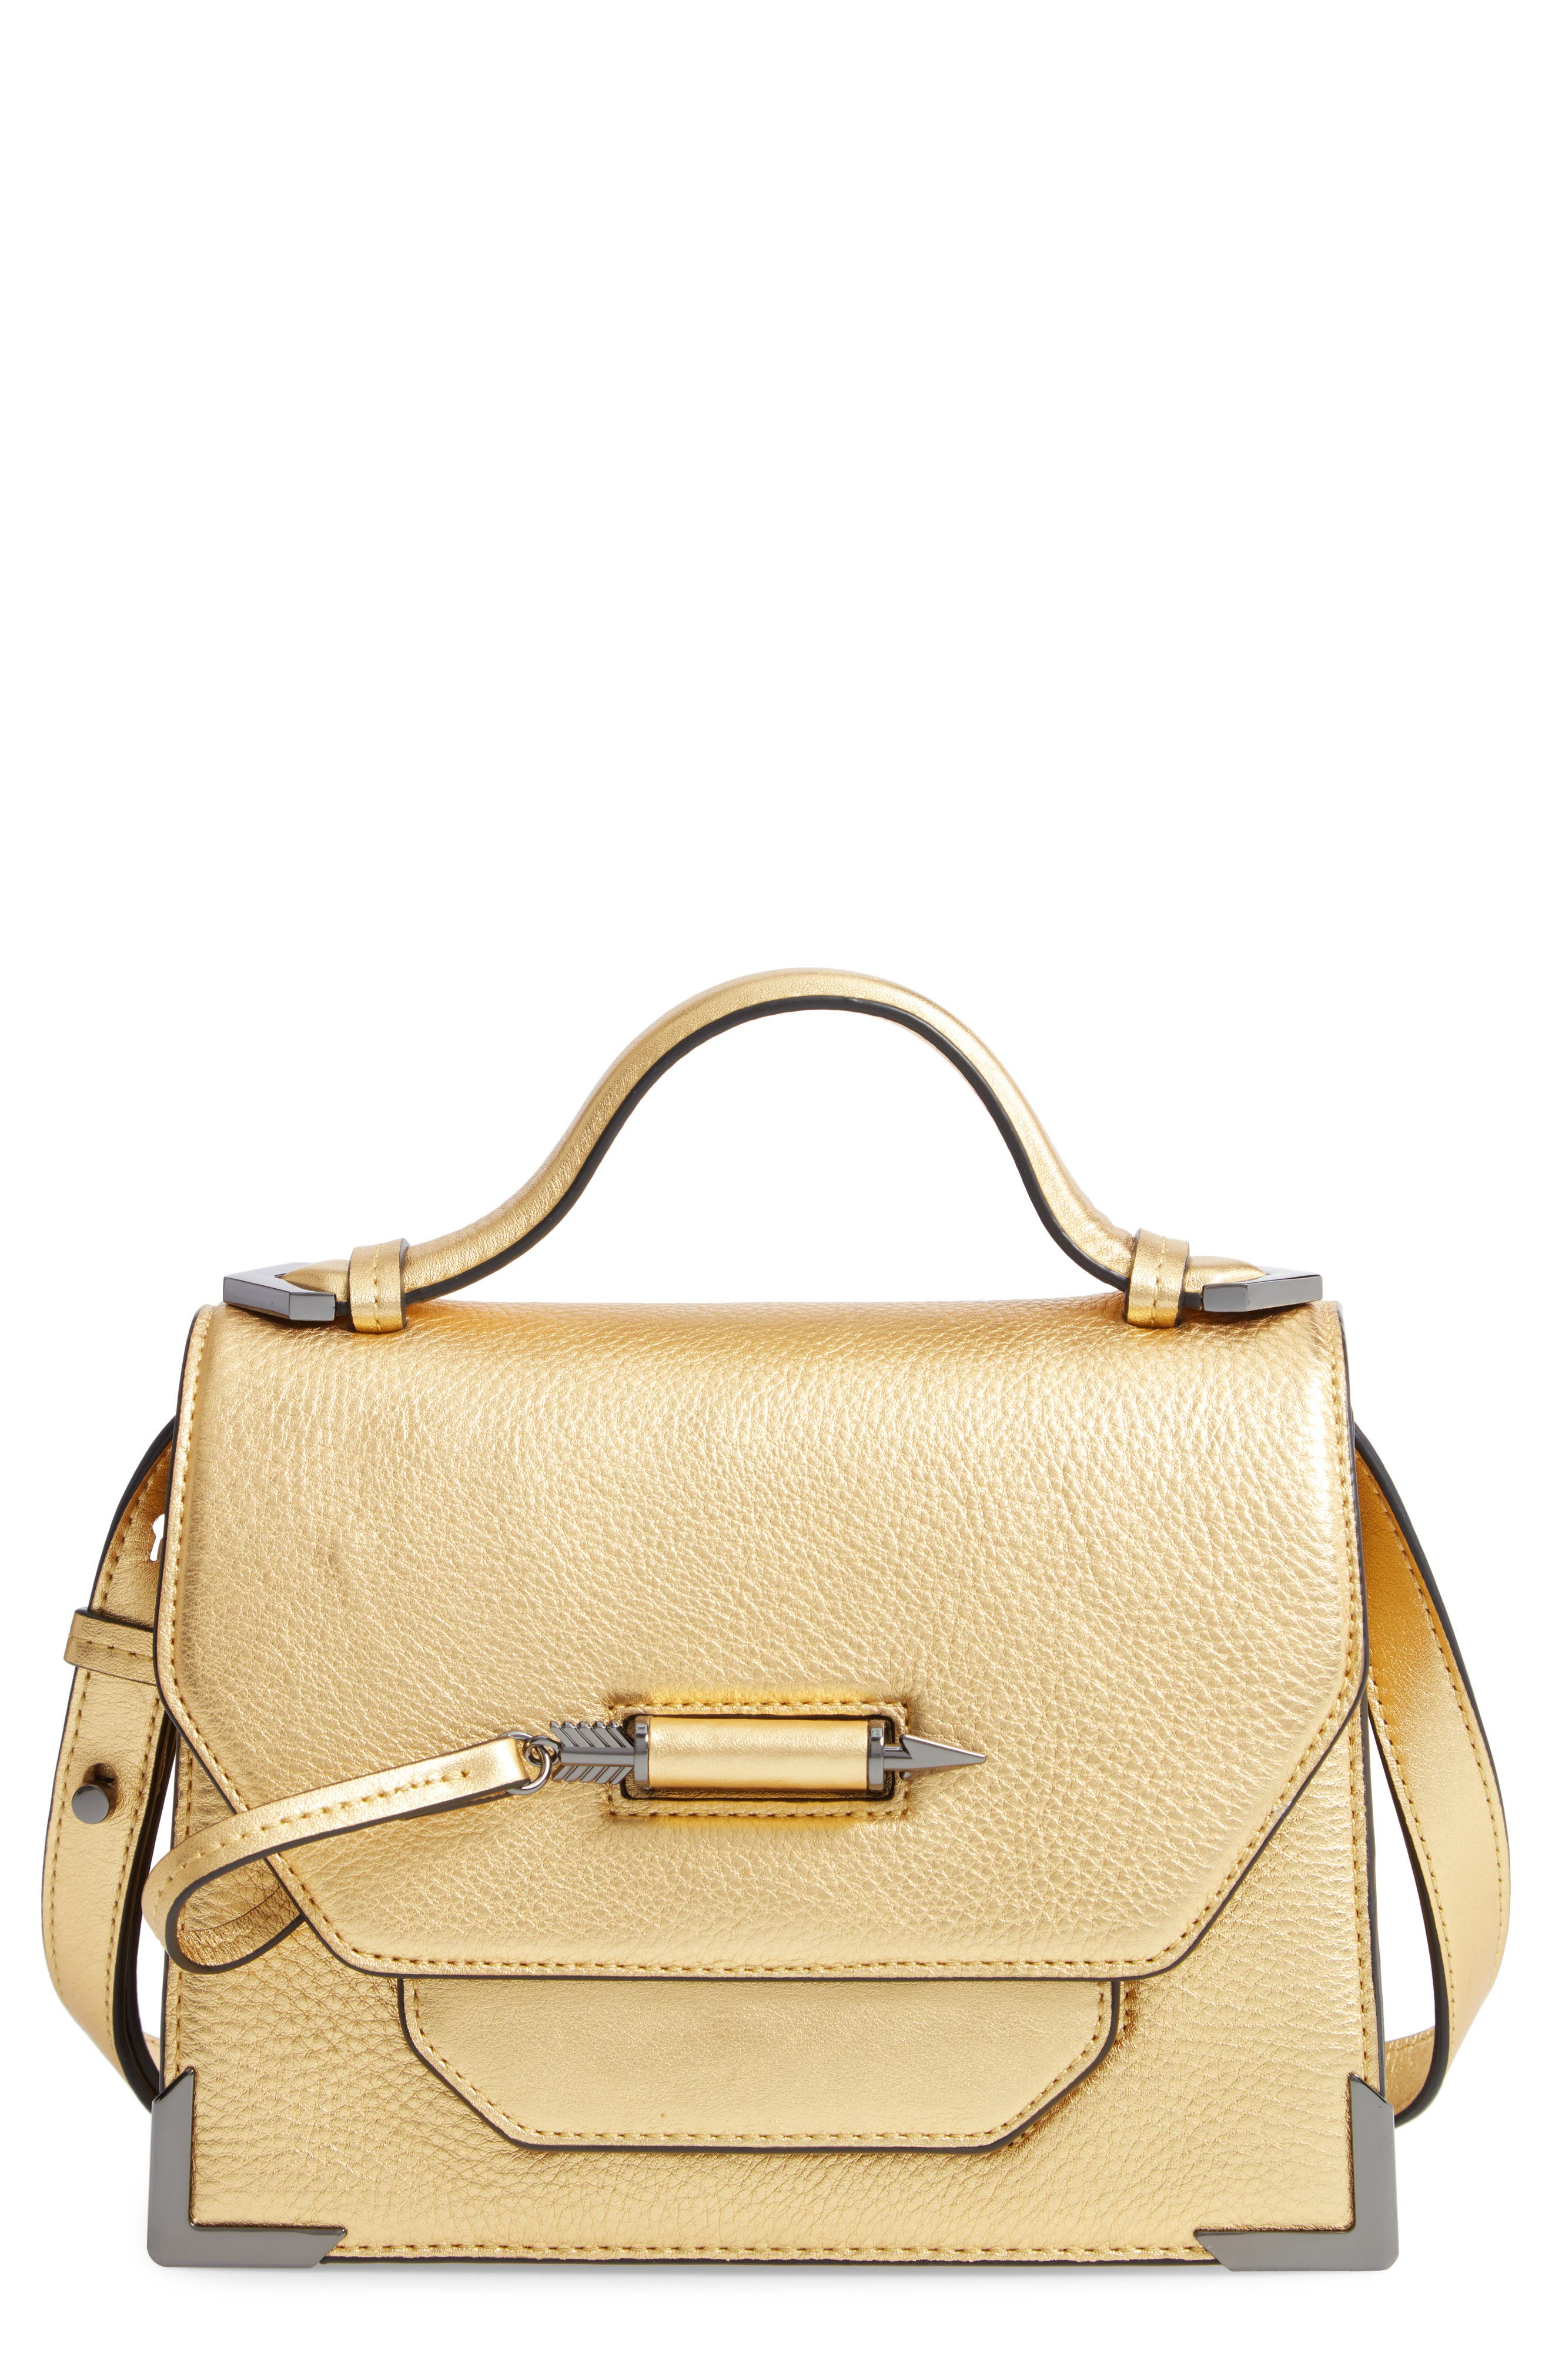 Keeley Leather Satchel,                             Main thumbnail 1, color,                             GOLD/ GUNMETAL